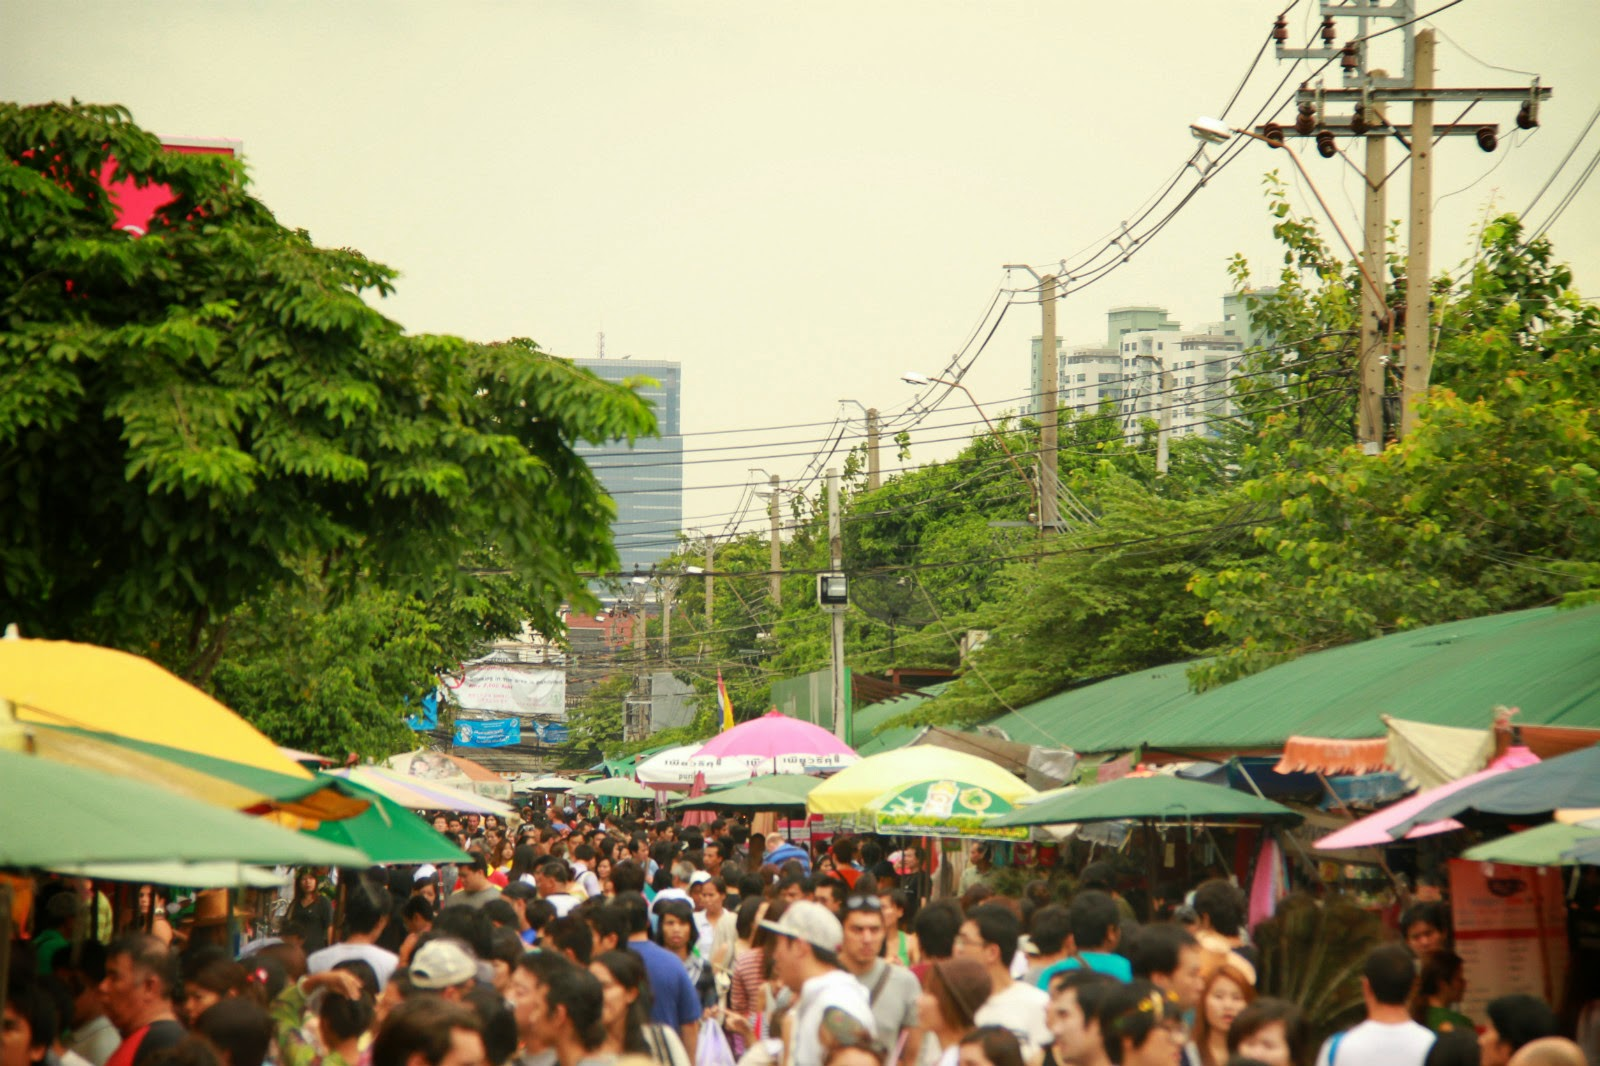 trip to bangkok essay Personal essay 5 tips for slashing your grocery budget in half popsugar living travel living travel things to do in northern thailand 17 reasons to skip.